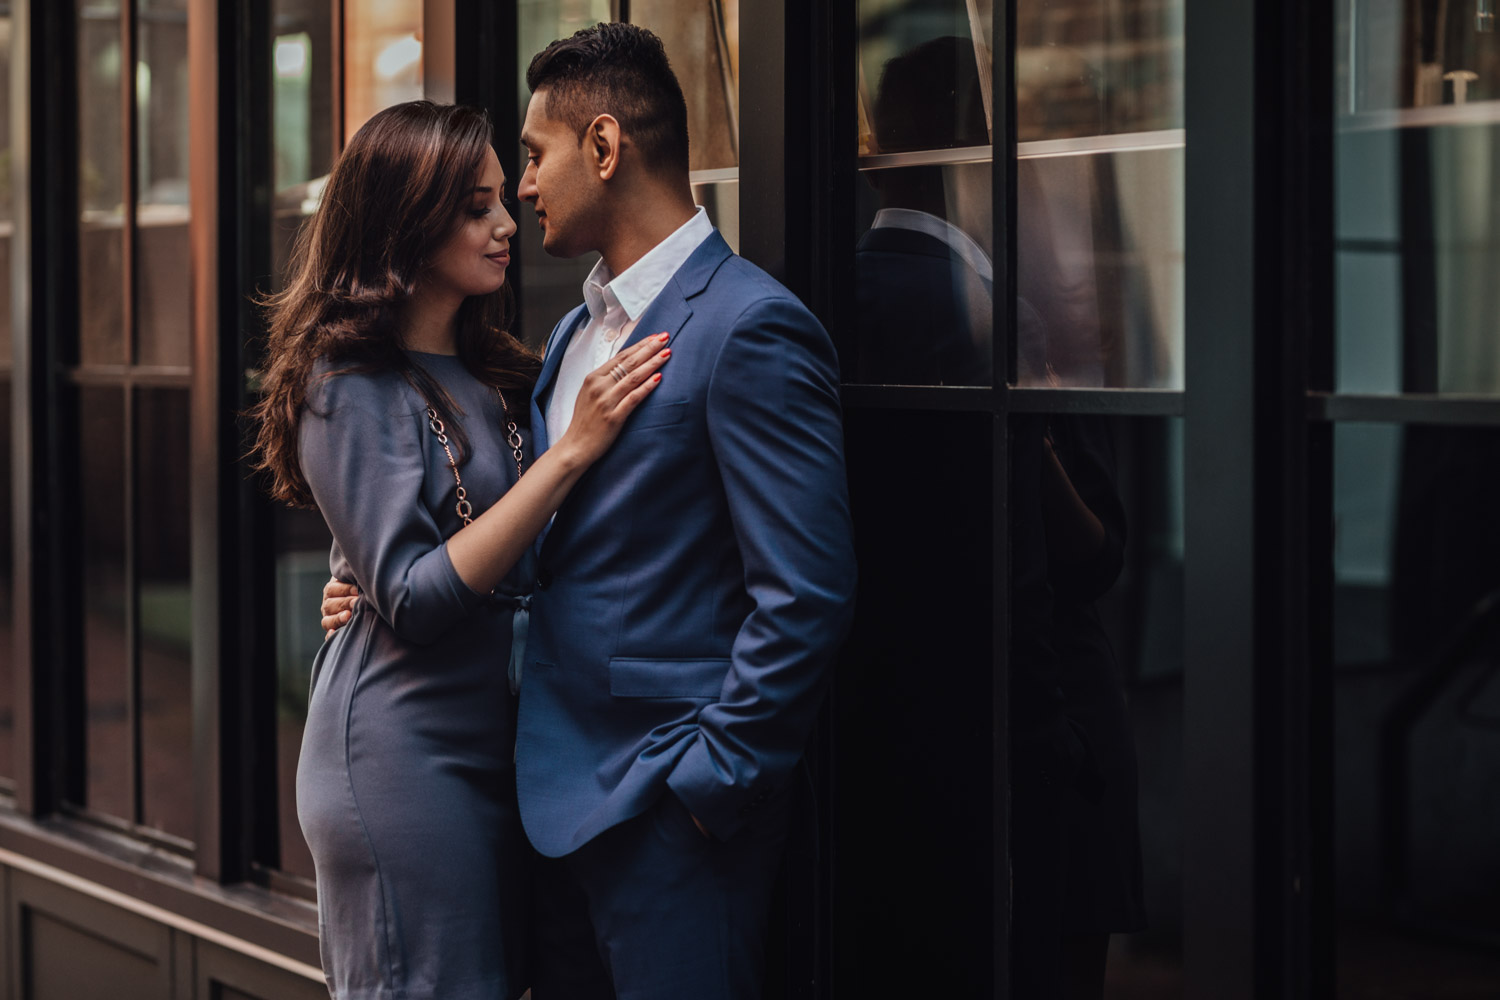 tasnia and jamin wedding engagement photography in gastown vancouver bc